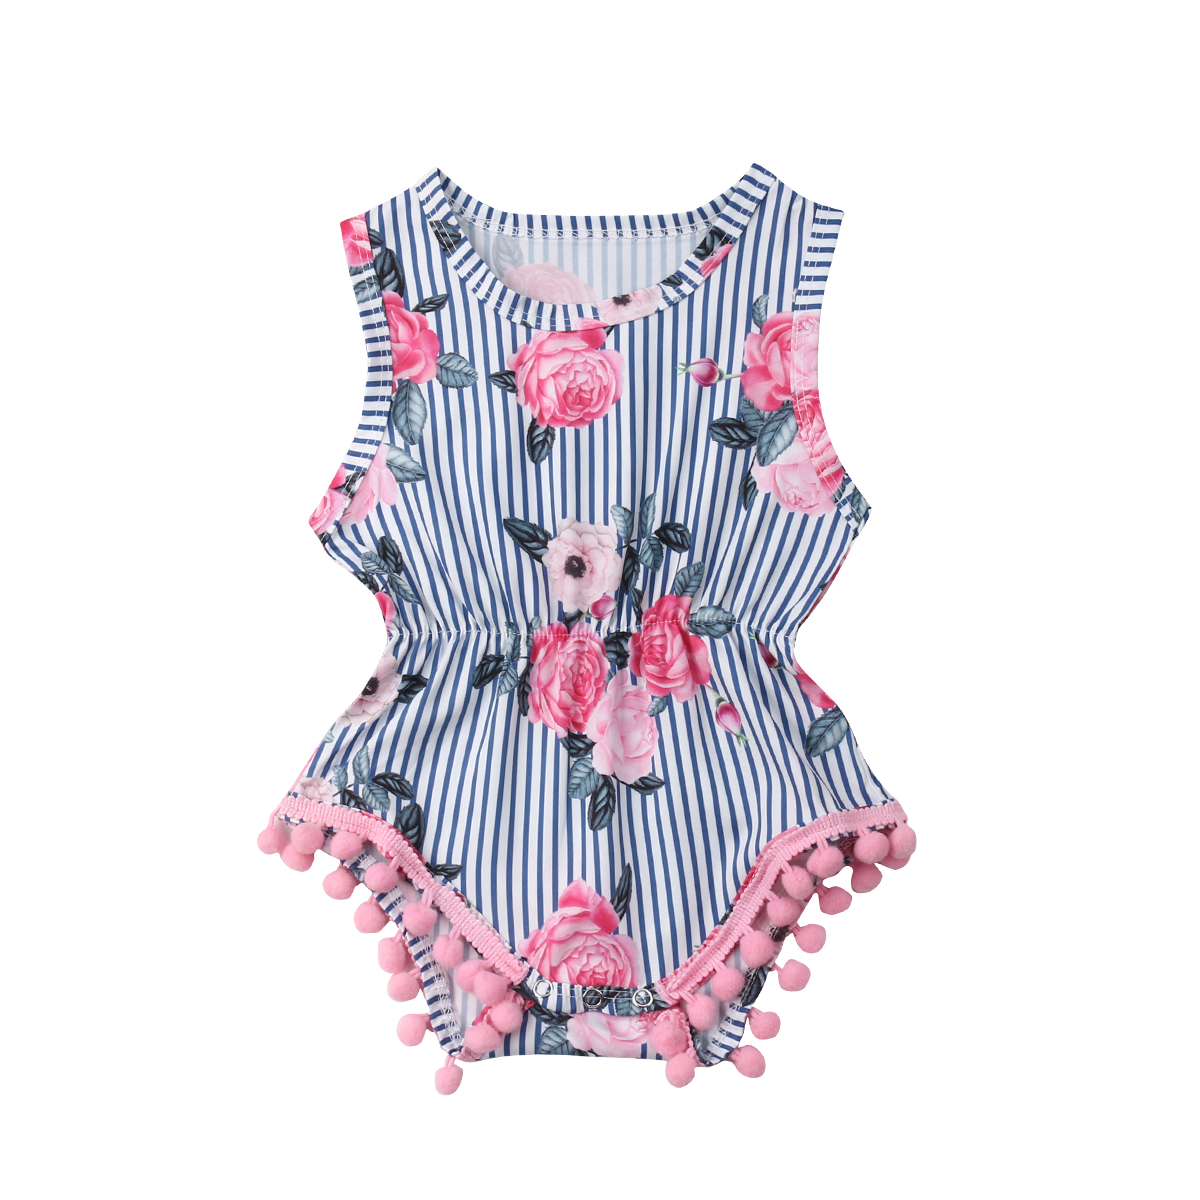 Newborn Infant Baby Girl Floral Sleeveless O Neck Flower Striped Bodysuit Jumpsuit Tassels Sunsuit Clothes Outfit